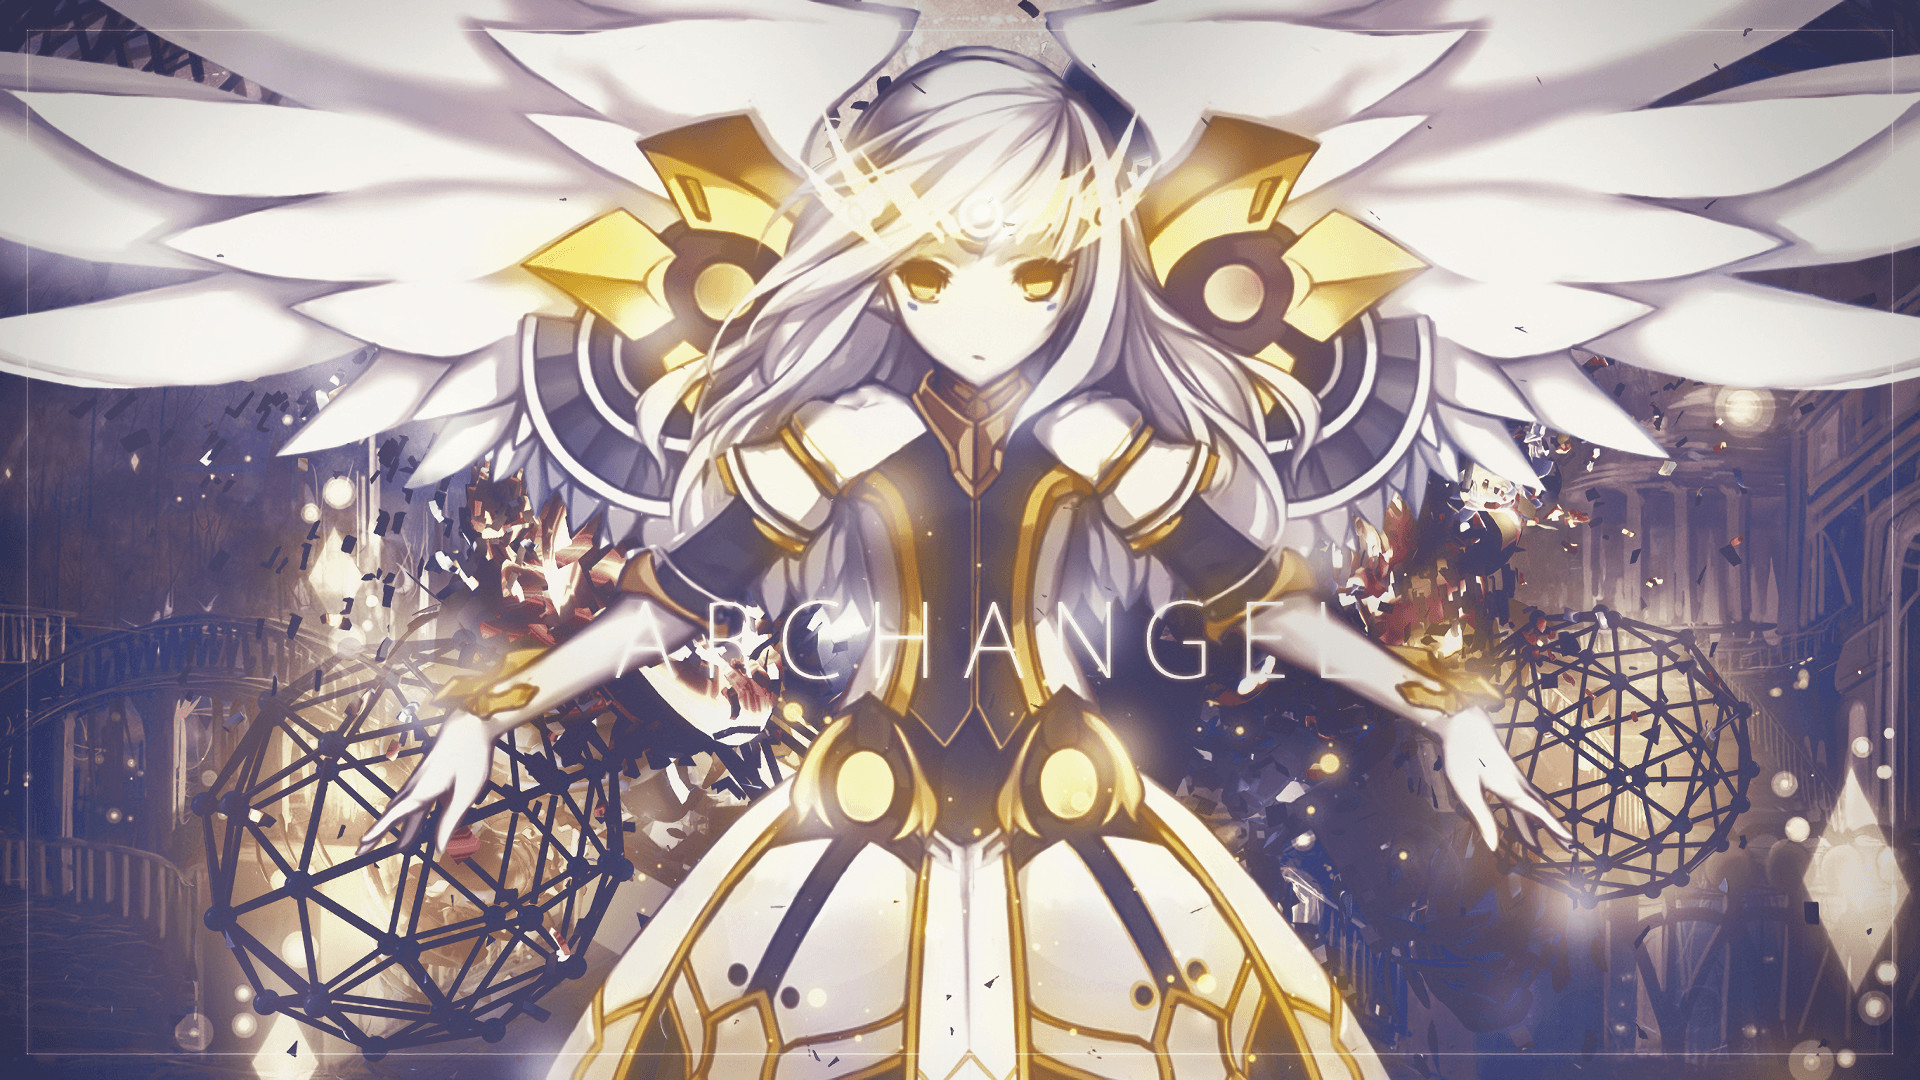 Elsword season 2 wallpapers 76 images 2143x1080 hd wallpaper background id836459 voltagebd Image collections